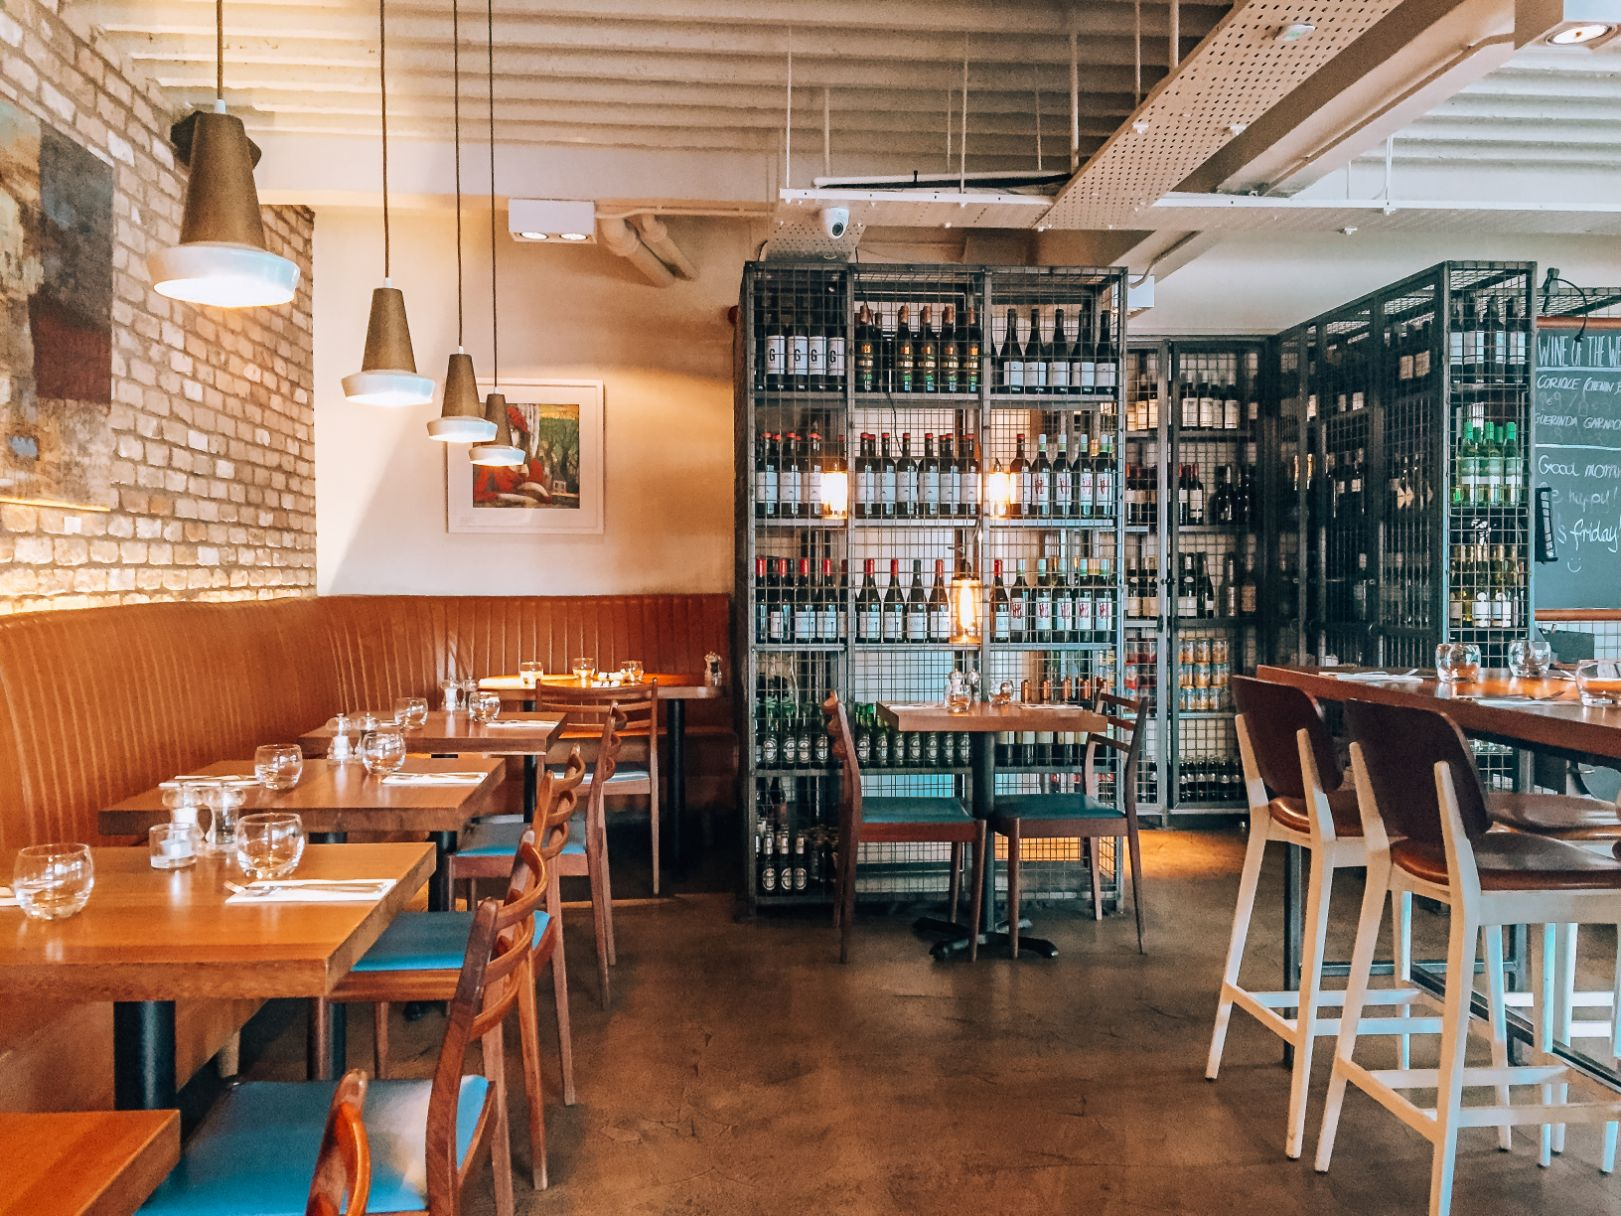 Interior of Union 8 cafe featuring wooden cafe tables lined up against the brick wall on the left with wine racks and bottles towards the back